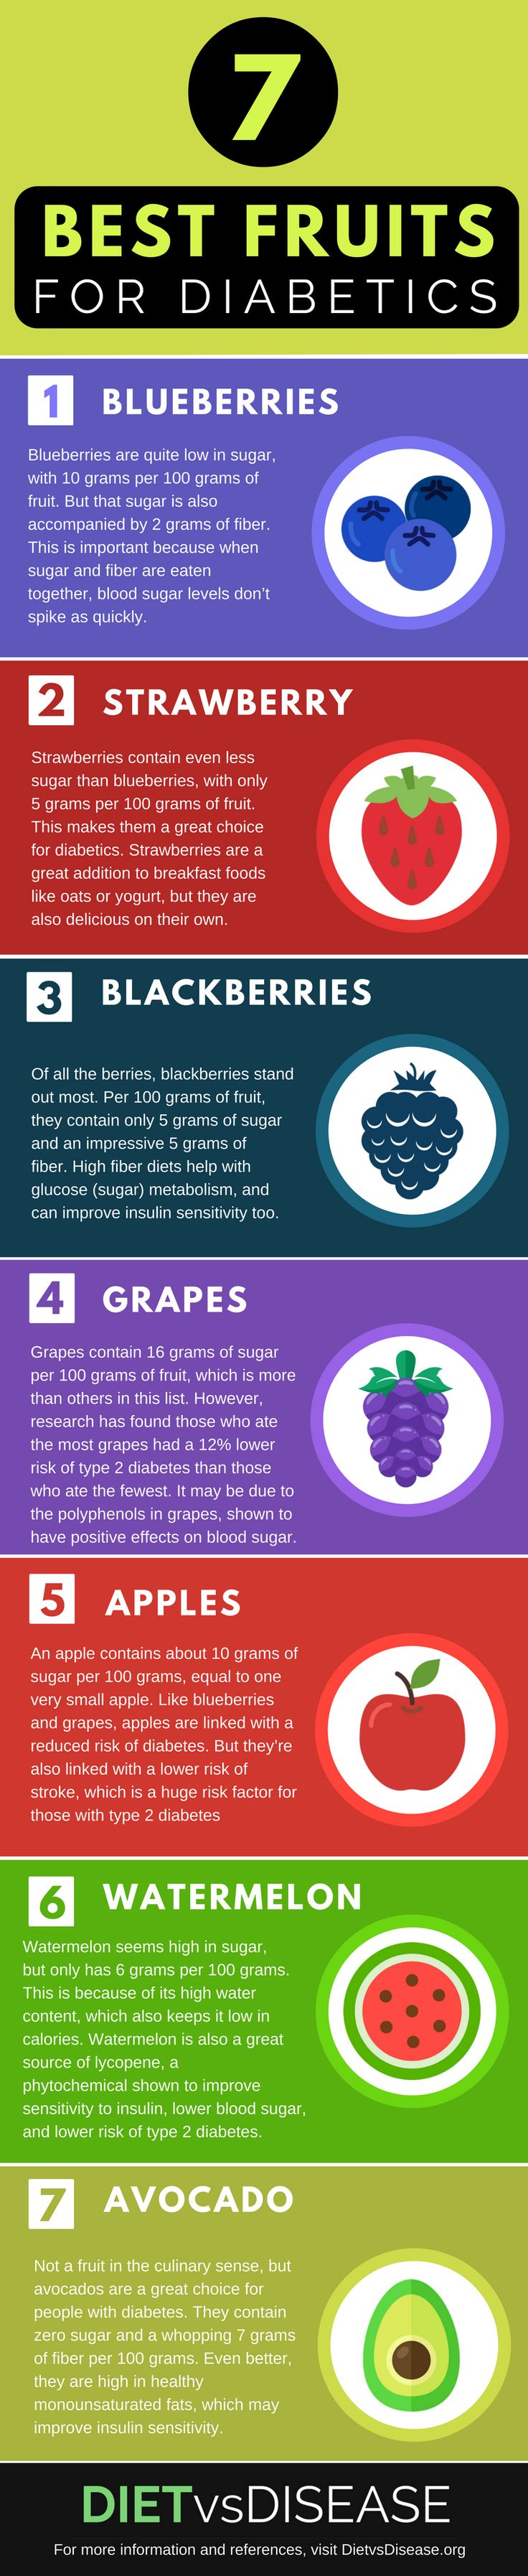 Fruits are delicious, but can be high in sugar. This article takes a science-based look at the most suitable fruits for diabetics. Learn more here: www.dietvsdisease...